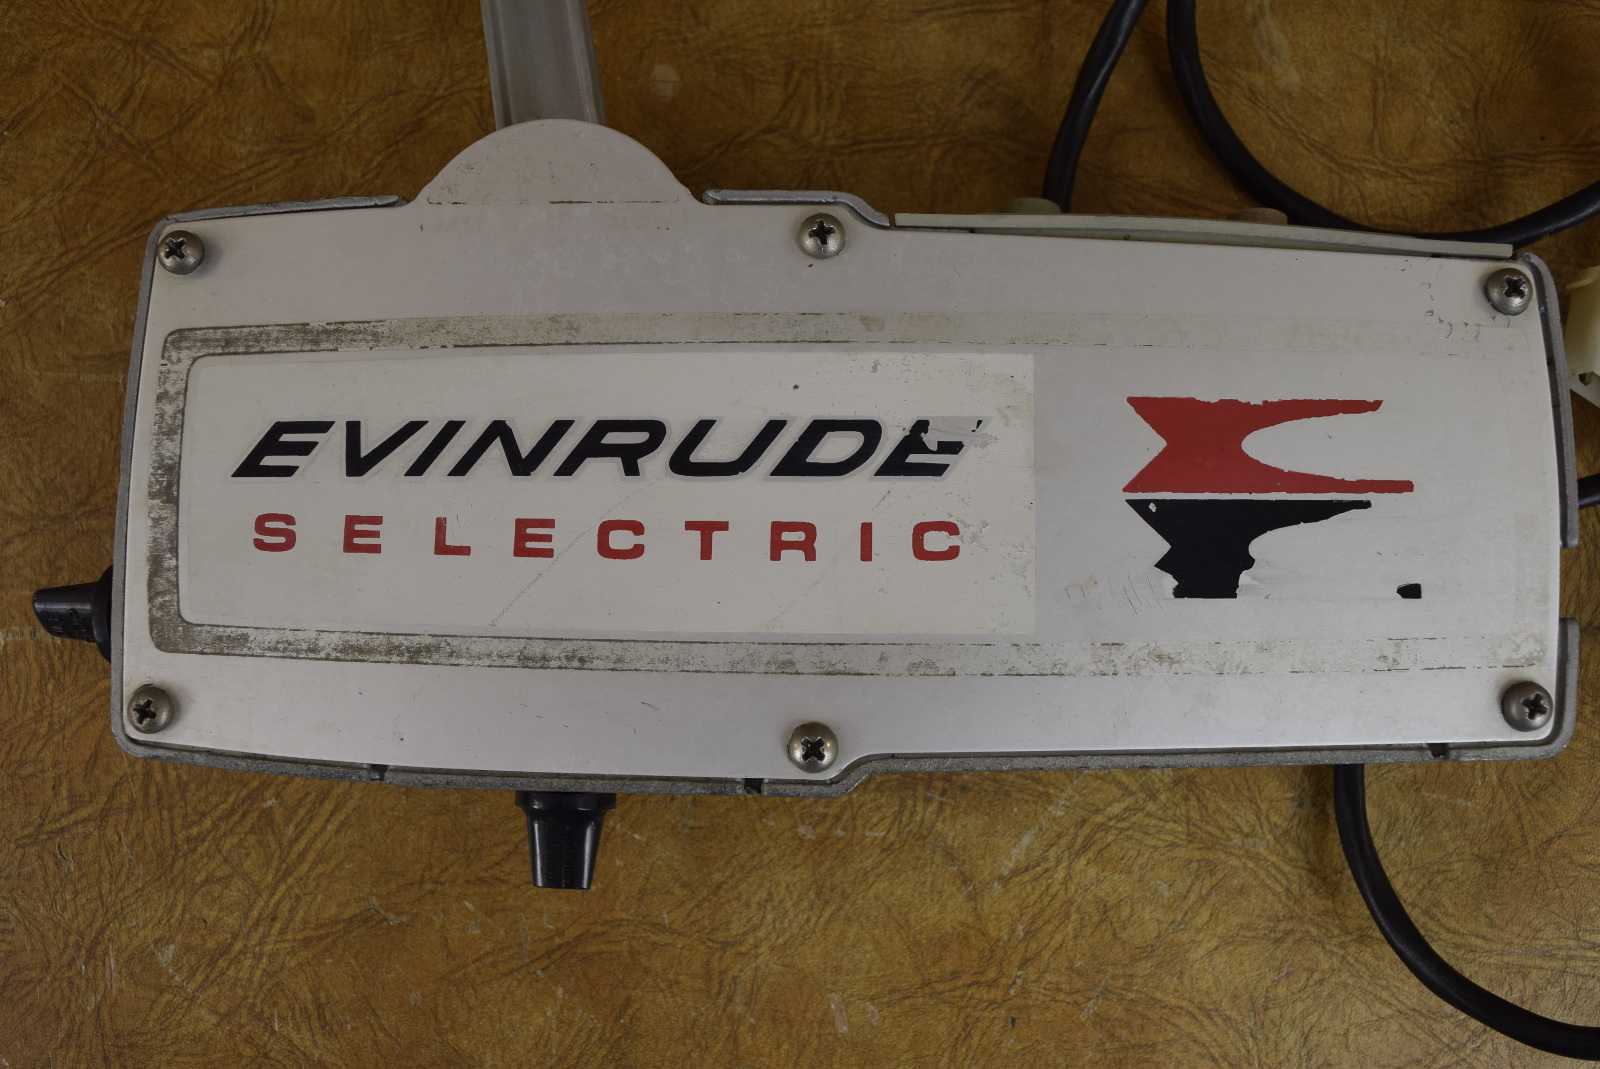 Evinrude 115 Hp Engine Wiring Harness Moreover 1972 50 Hp Evinrude